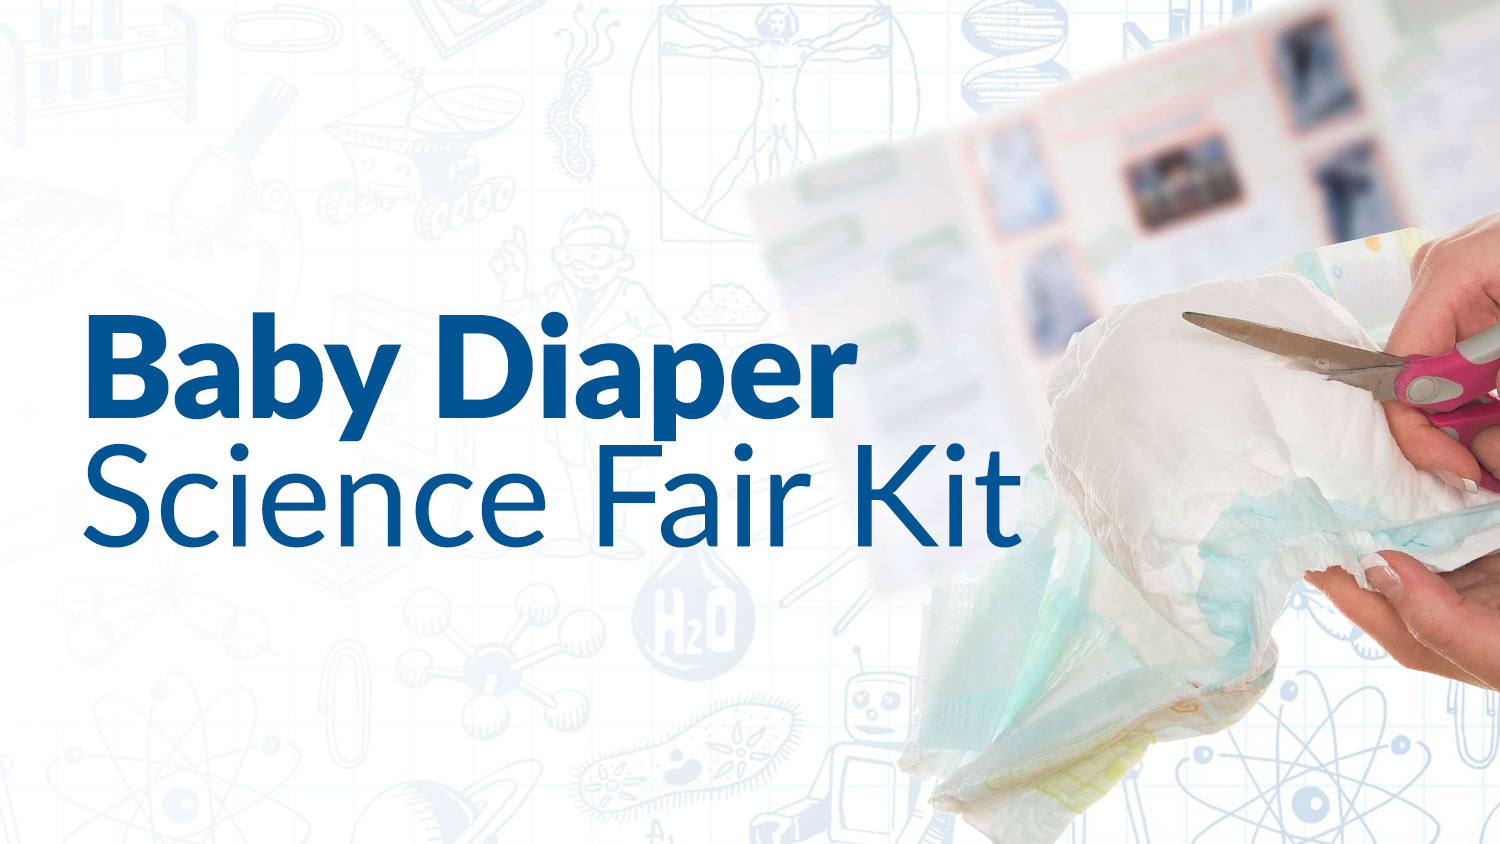 Baby Diaper Science Fair